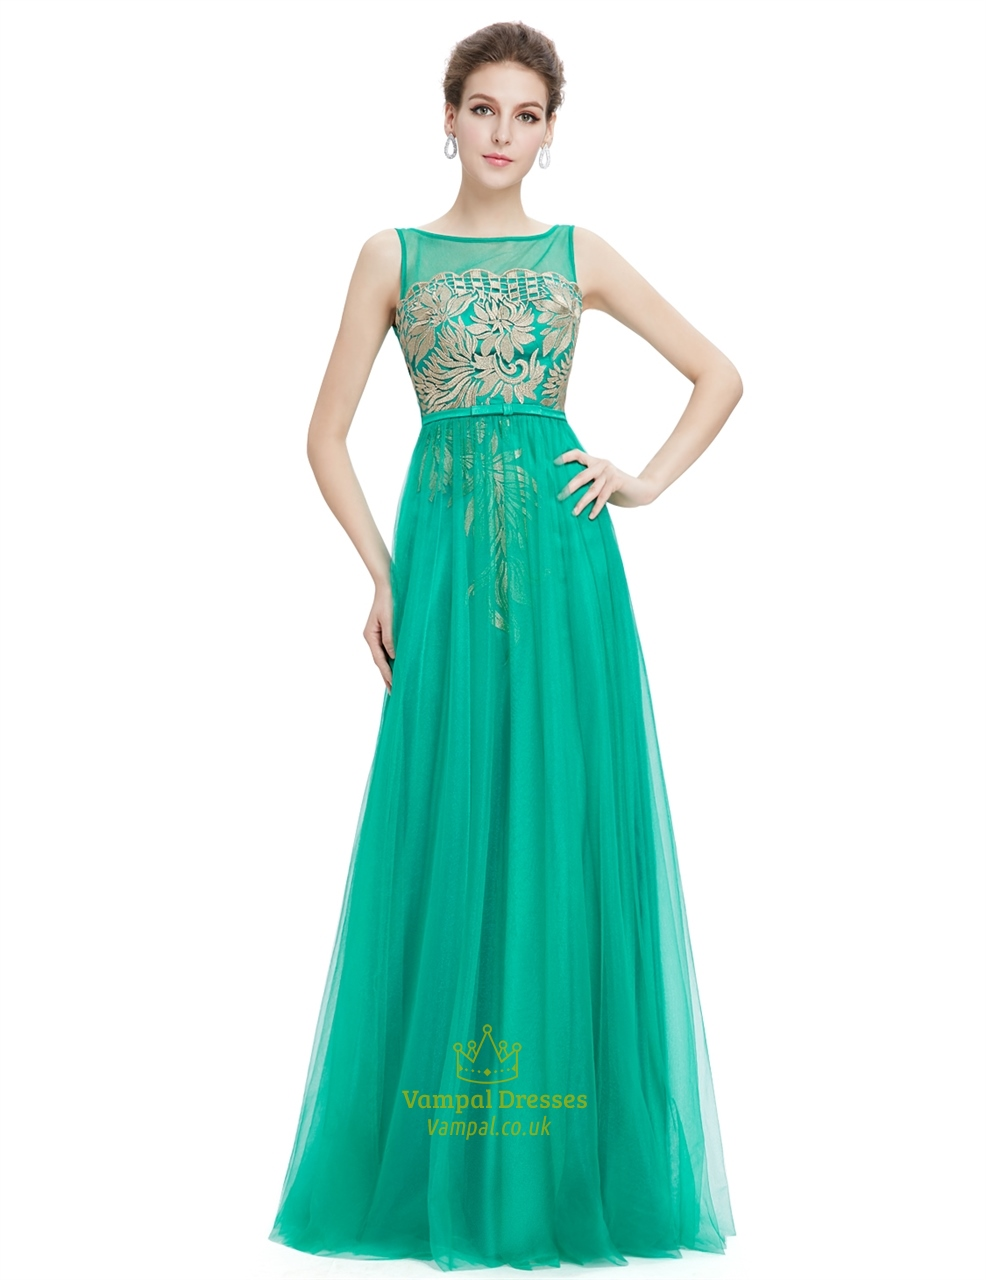 Green Sleeveless Tulle Prom Dress With Gold Accents | Vampal Dresses